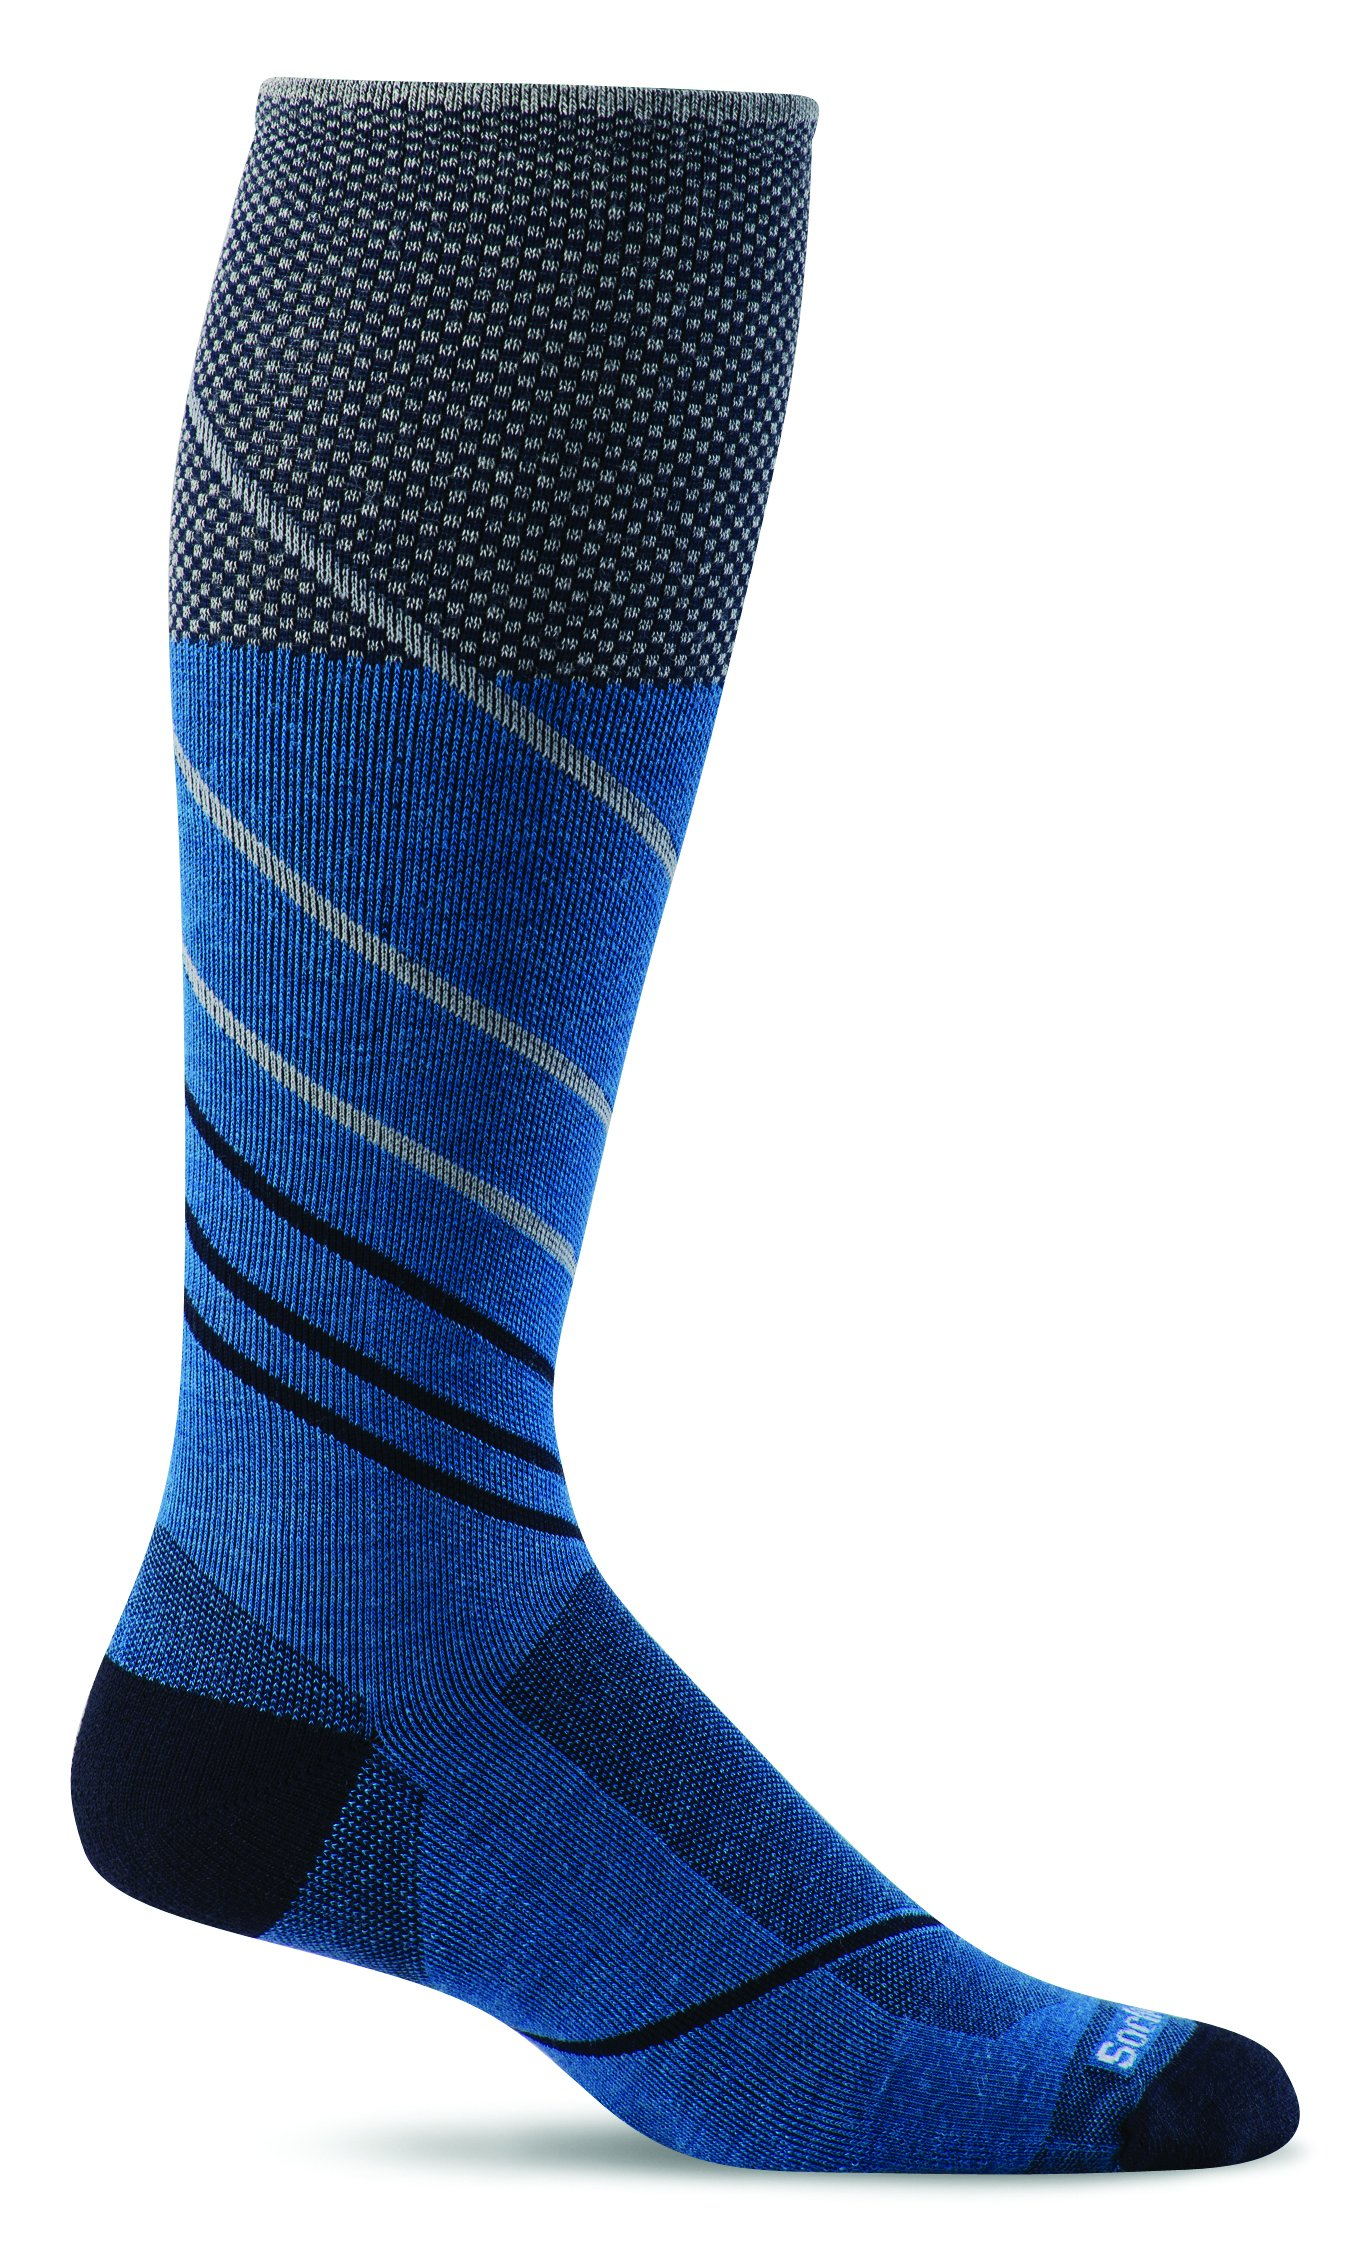 Sockwell Men's Pulse Firm Graduated Compression Socks, Ocean, Medium/Large by Sockwell